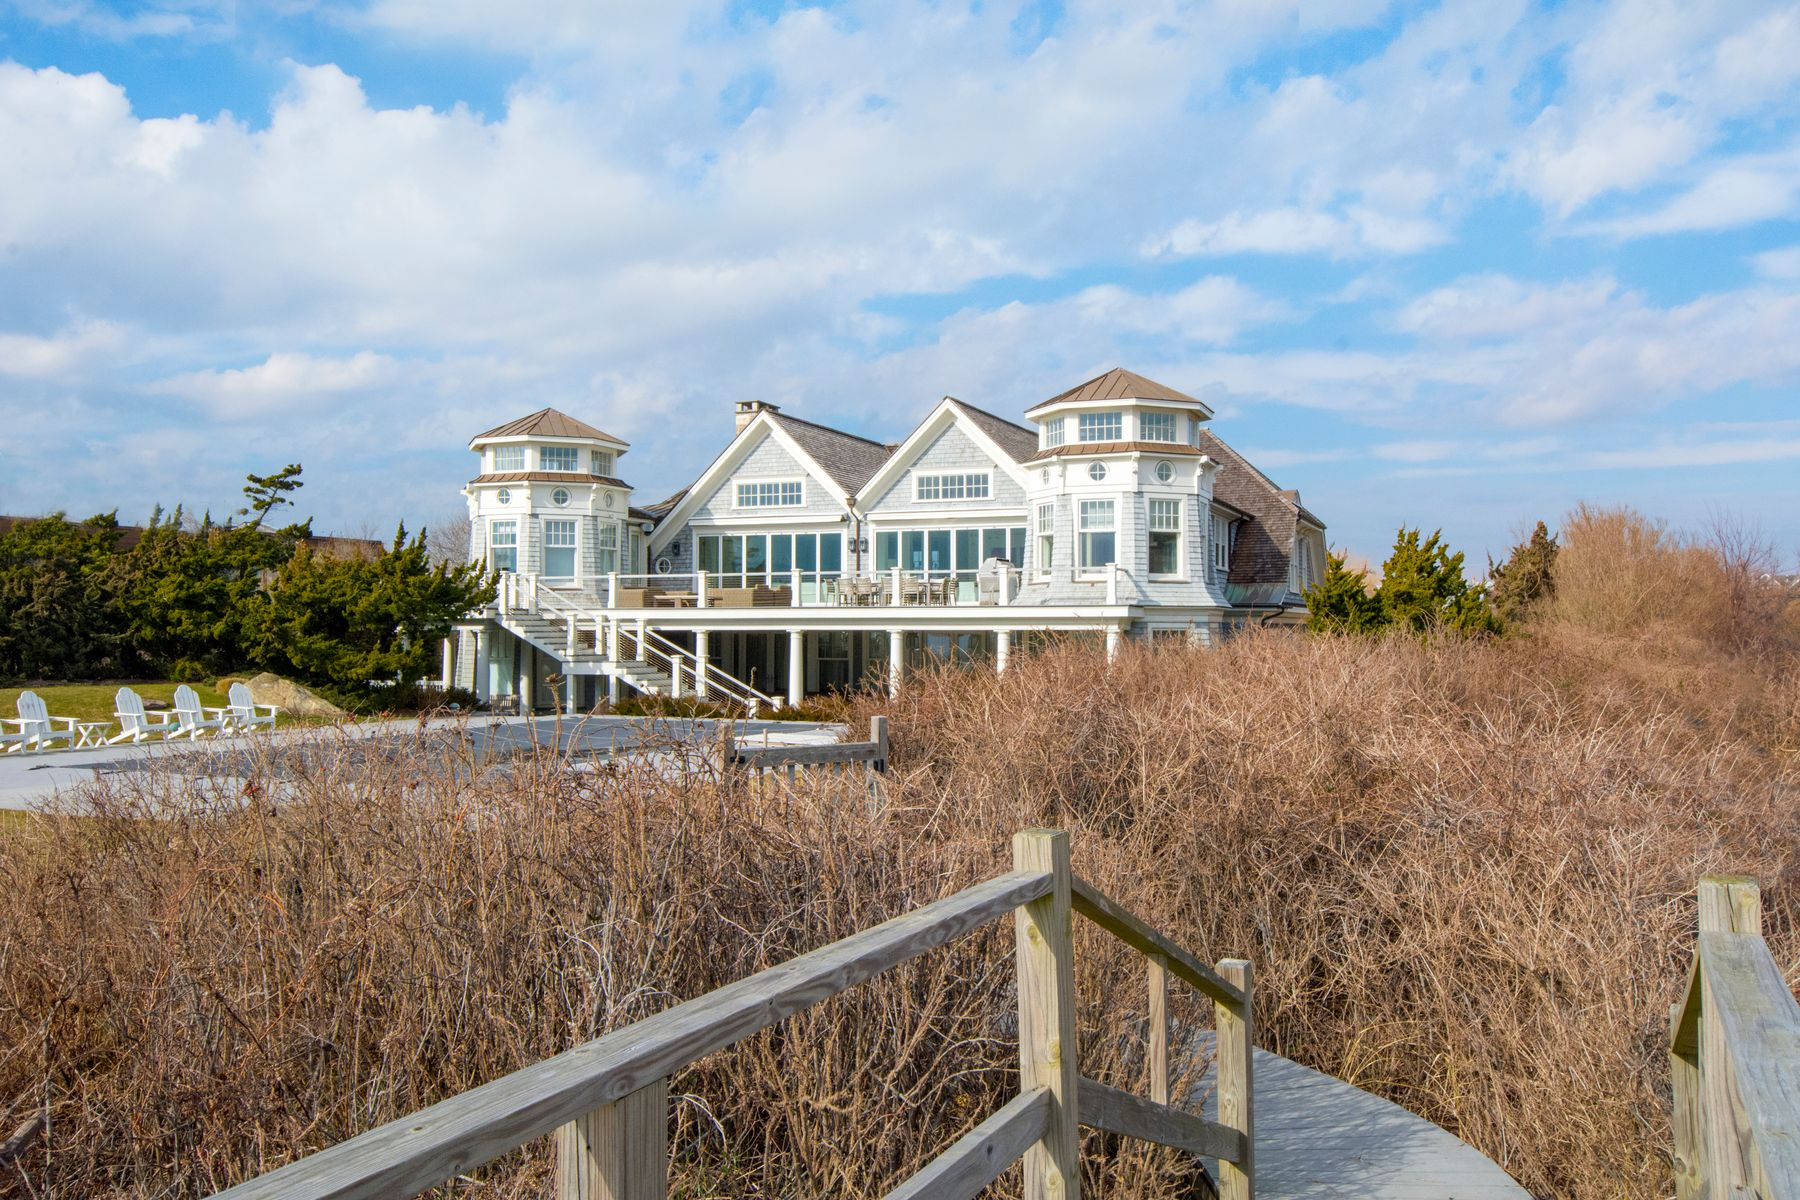 Single Family Homes for Rent at Bridgehampton Oceanfront 205 Surfside Drive Bridgehampton, New York 11932 United States